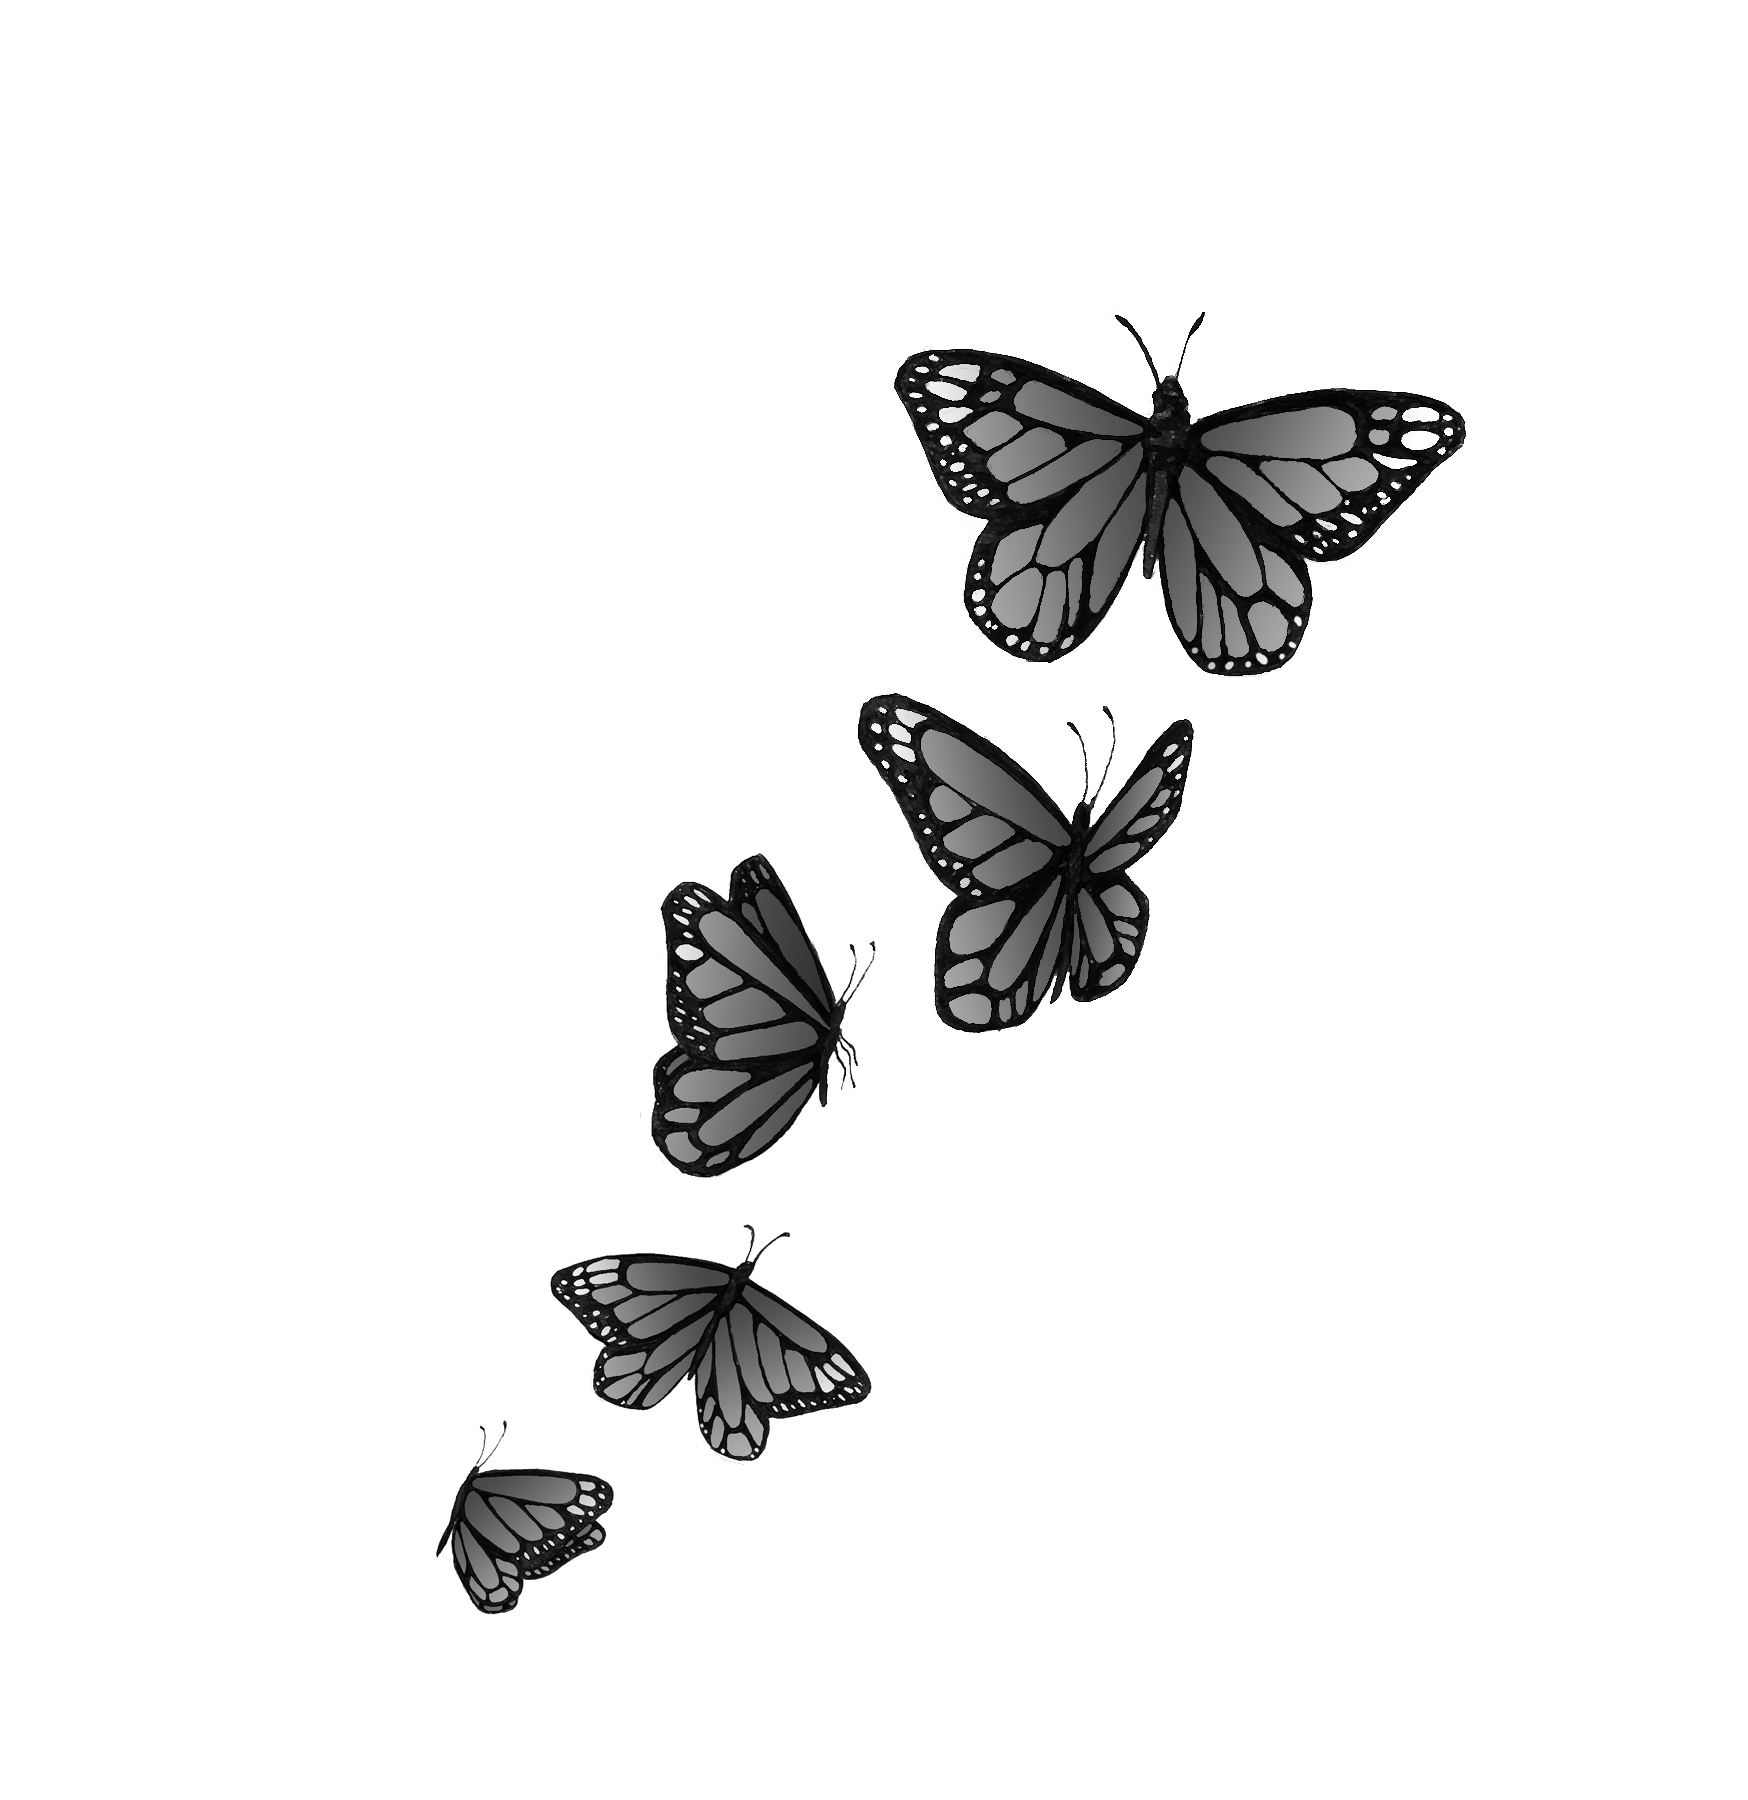 Butterfly Tattoos Designs And Ideas  Page 6